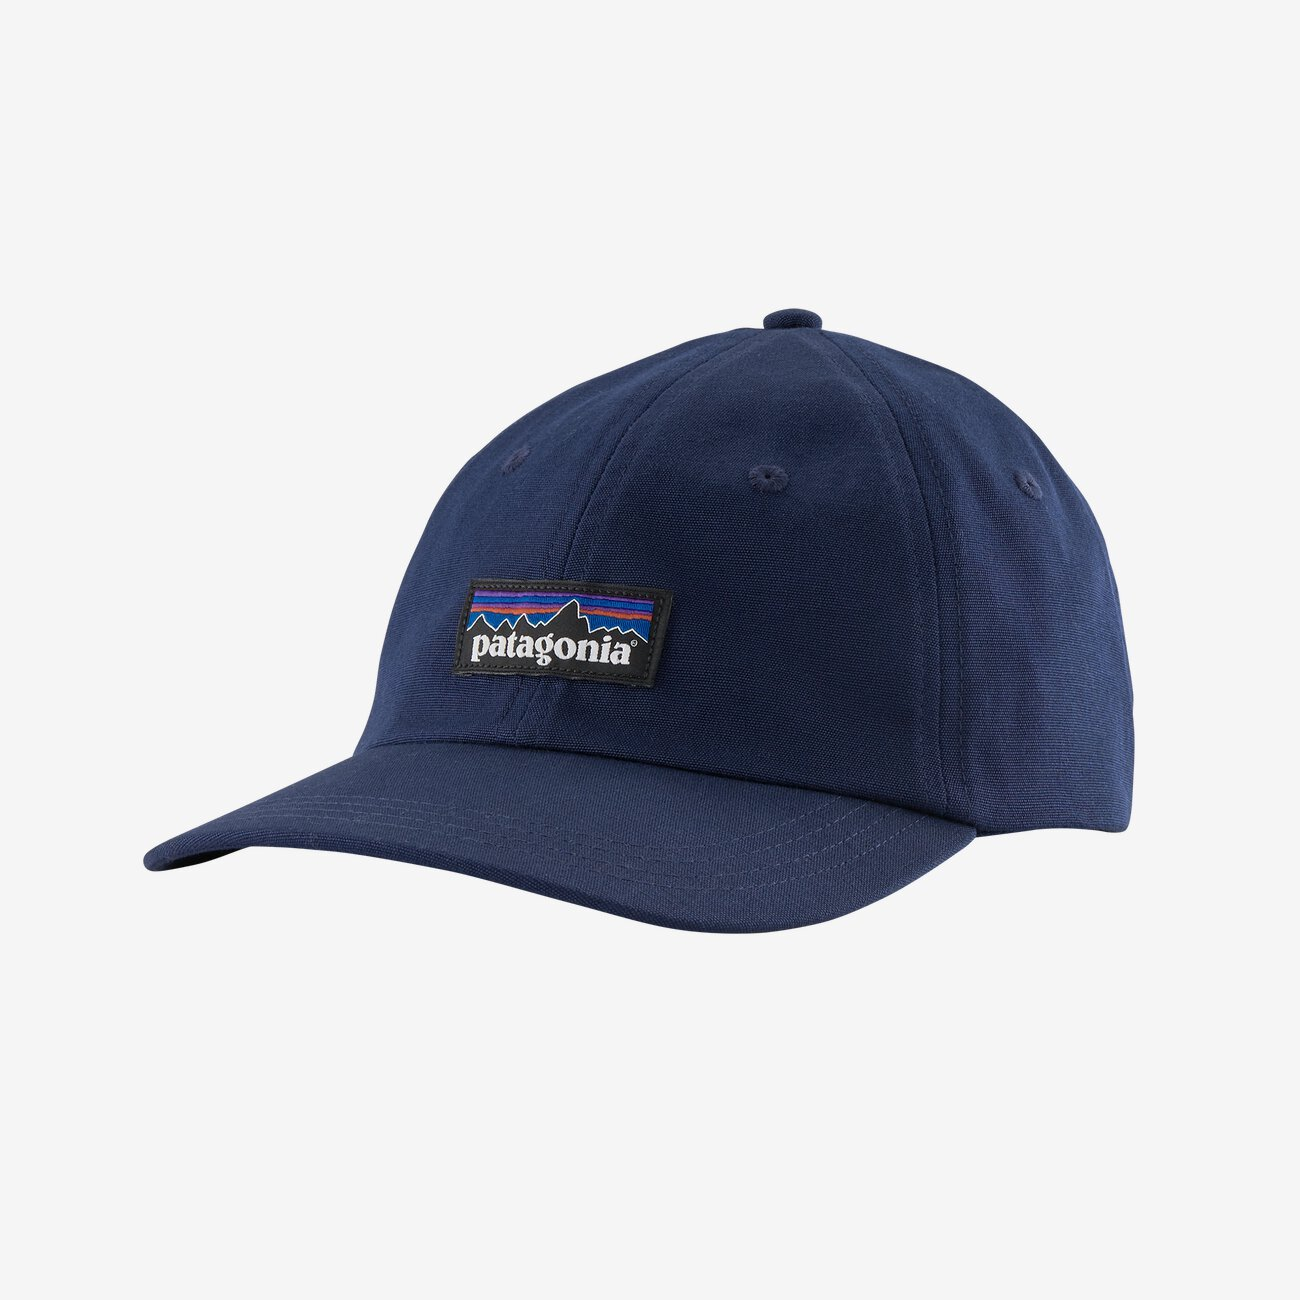 PATAGONIA Men's Hats CLASSIC NAVY / One Size Patagonia P-6 Label Trad Cap || David's Clothing 38296CNY